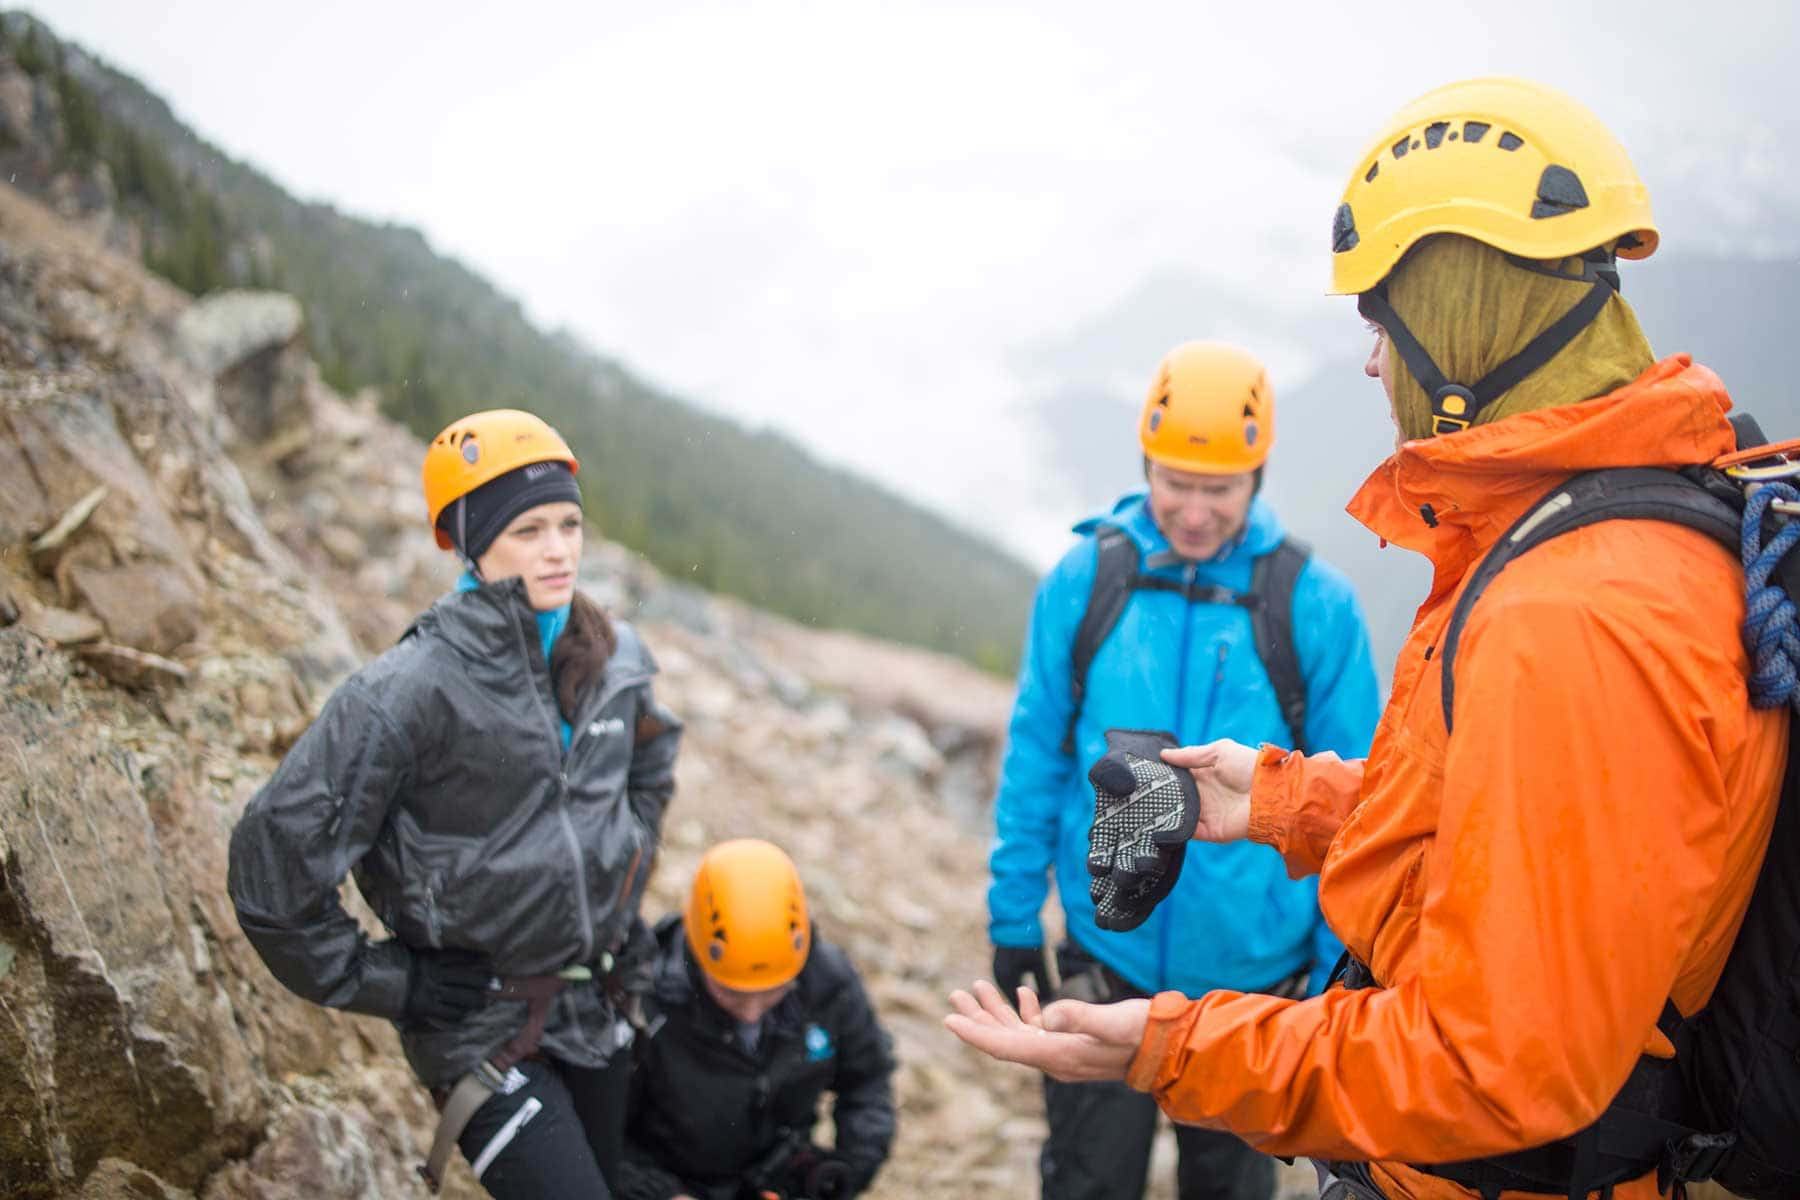 Our via ferrata guide gives us a safety run down.